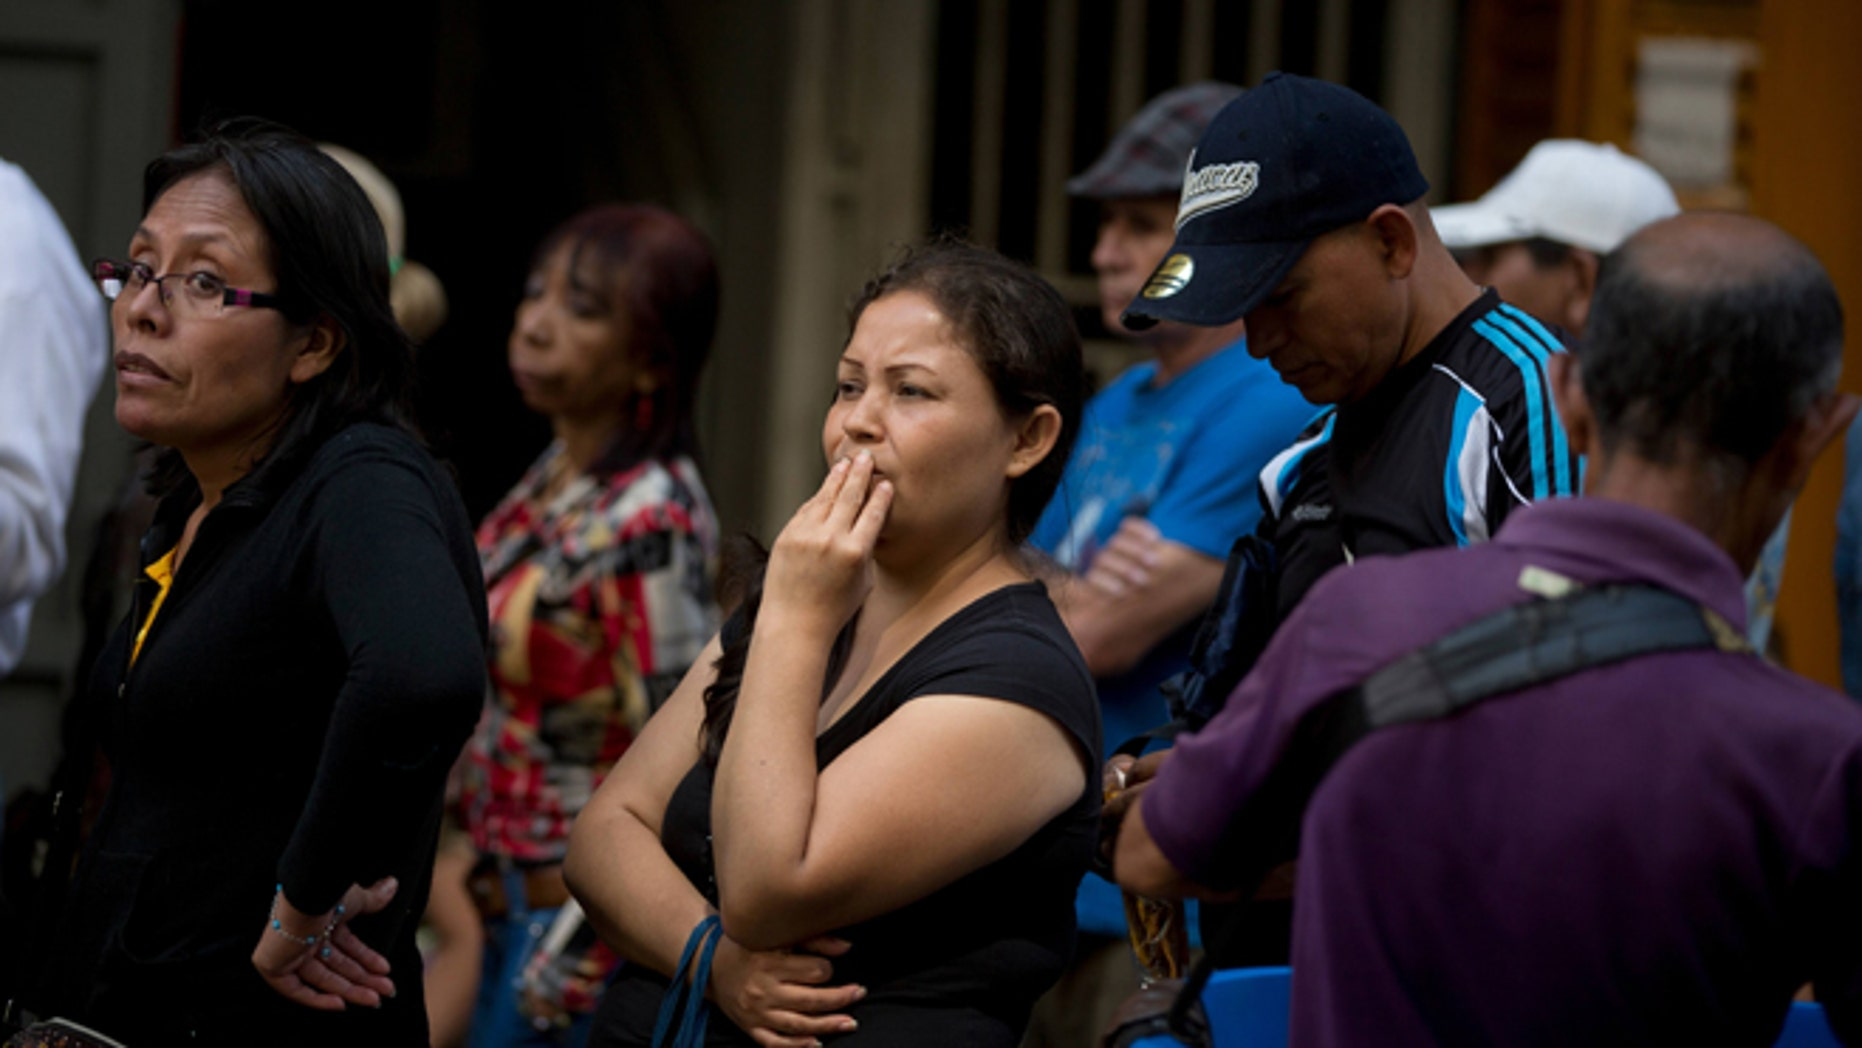 People wait in a line outside a supermarket in Caracas, Venezuela, to buy price regulated toilet paper made available for sale by the government, Friday, Jan. 22, 2016. In a note published Friday, the International Monetary Fund Western Hemisphere Director Alejandro Werner said inflation would more than double in the economically struggling South American country in 2016, reaching 720 percent. (AP Photo/Fernando Llano)